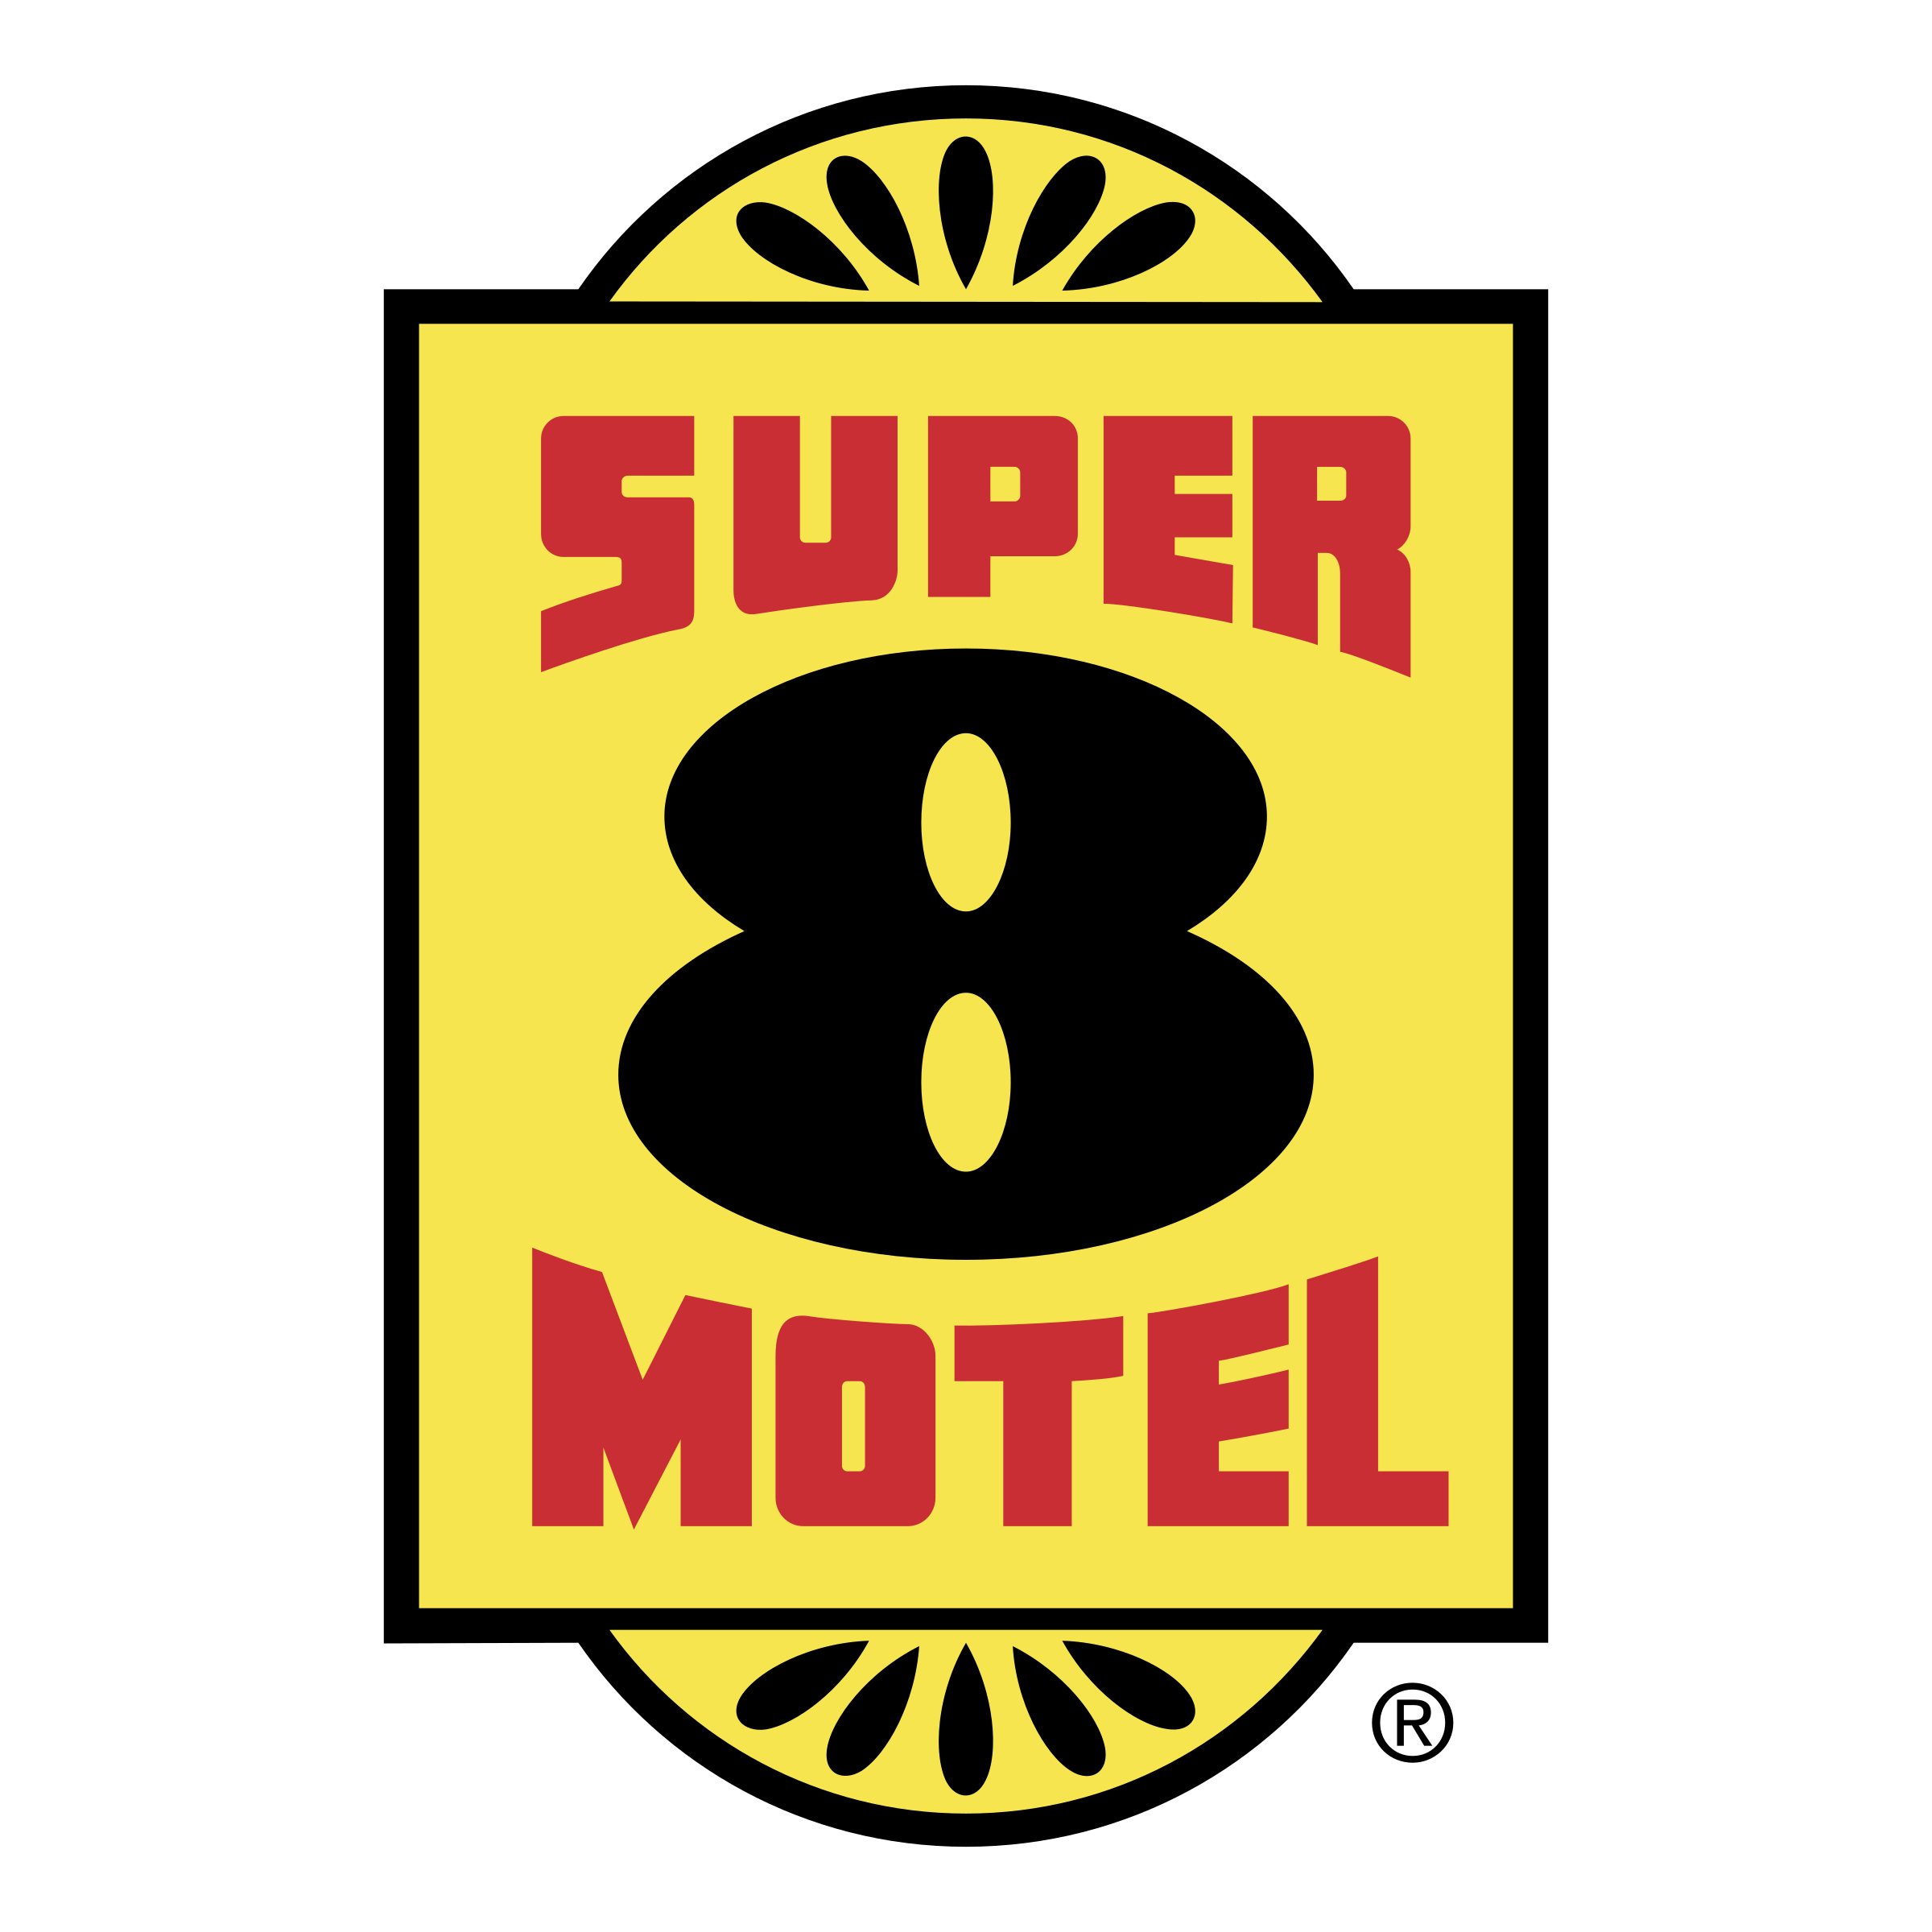 super 8 motel logo png transparent amp svg vector freebie